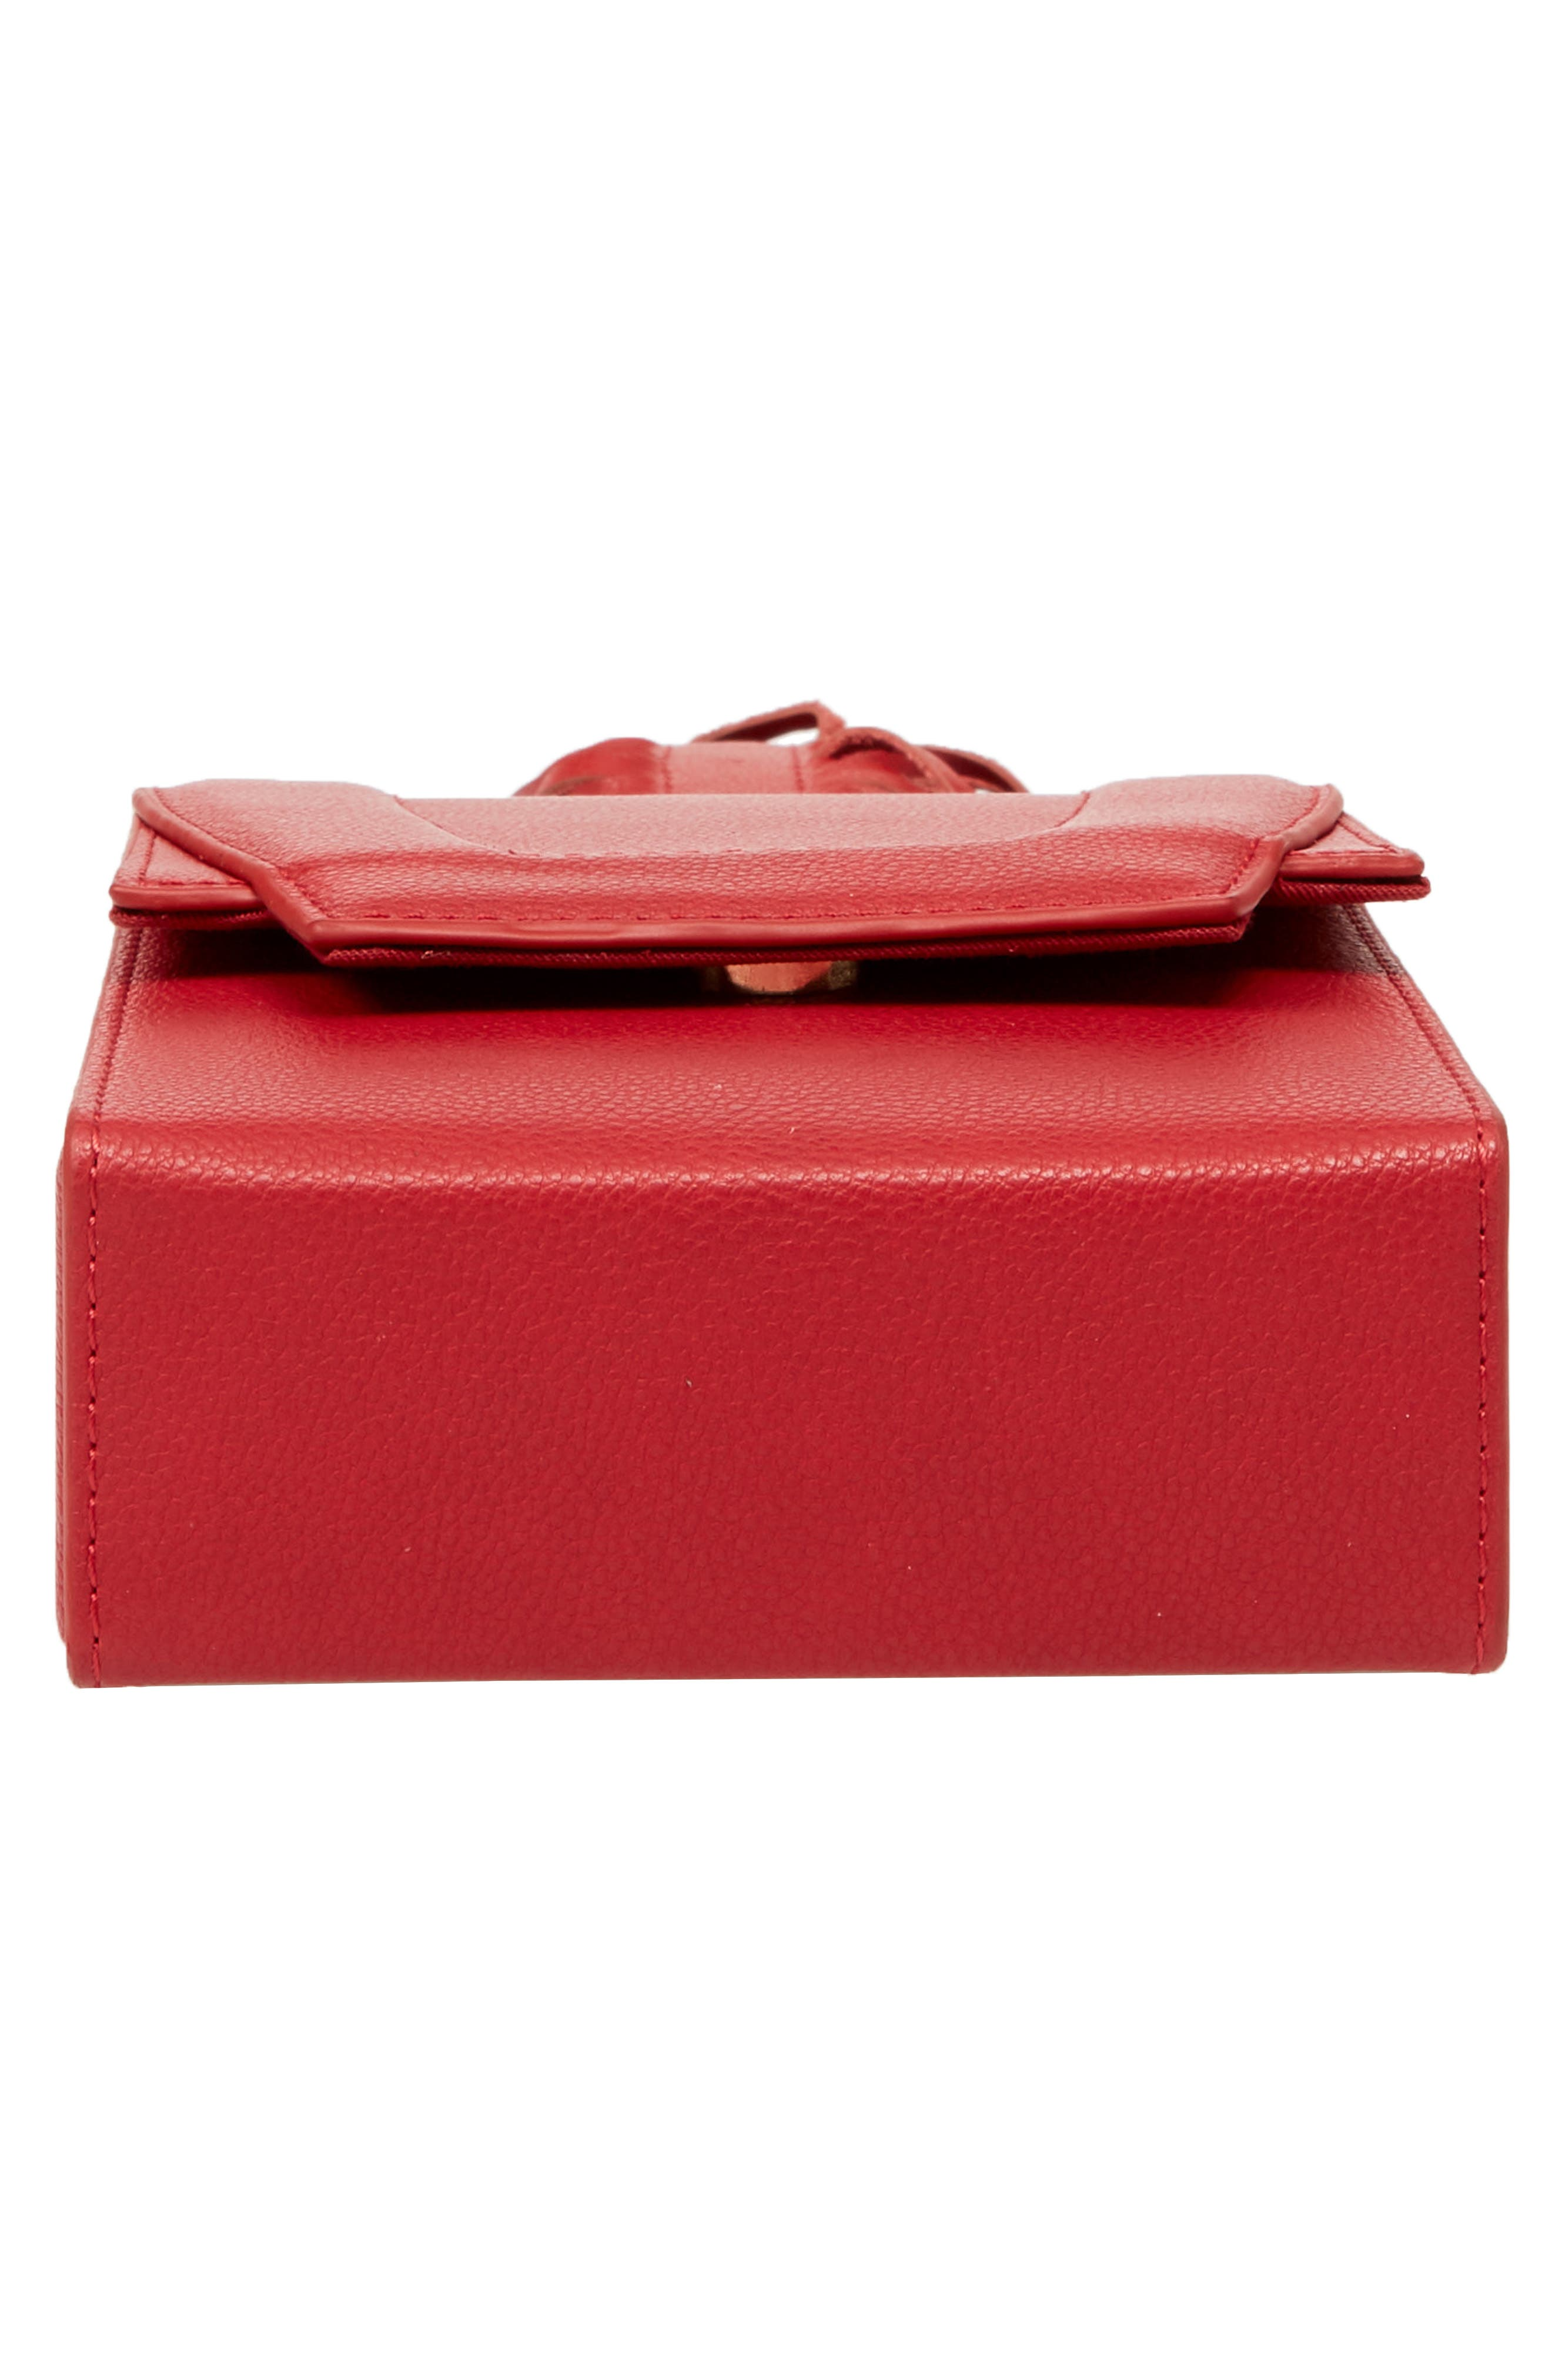 Alivia Leather Clutch,                             Alternate thumbnail 11, color,